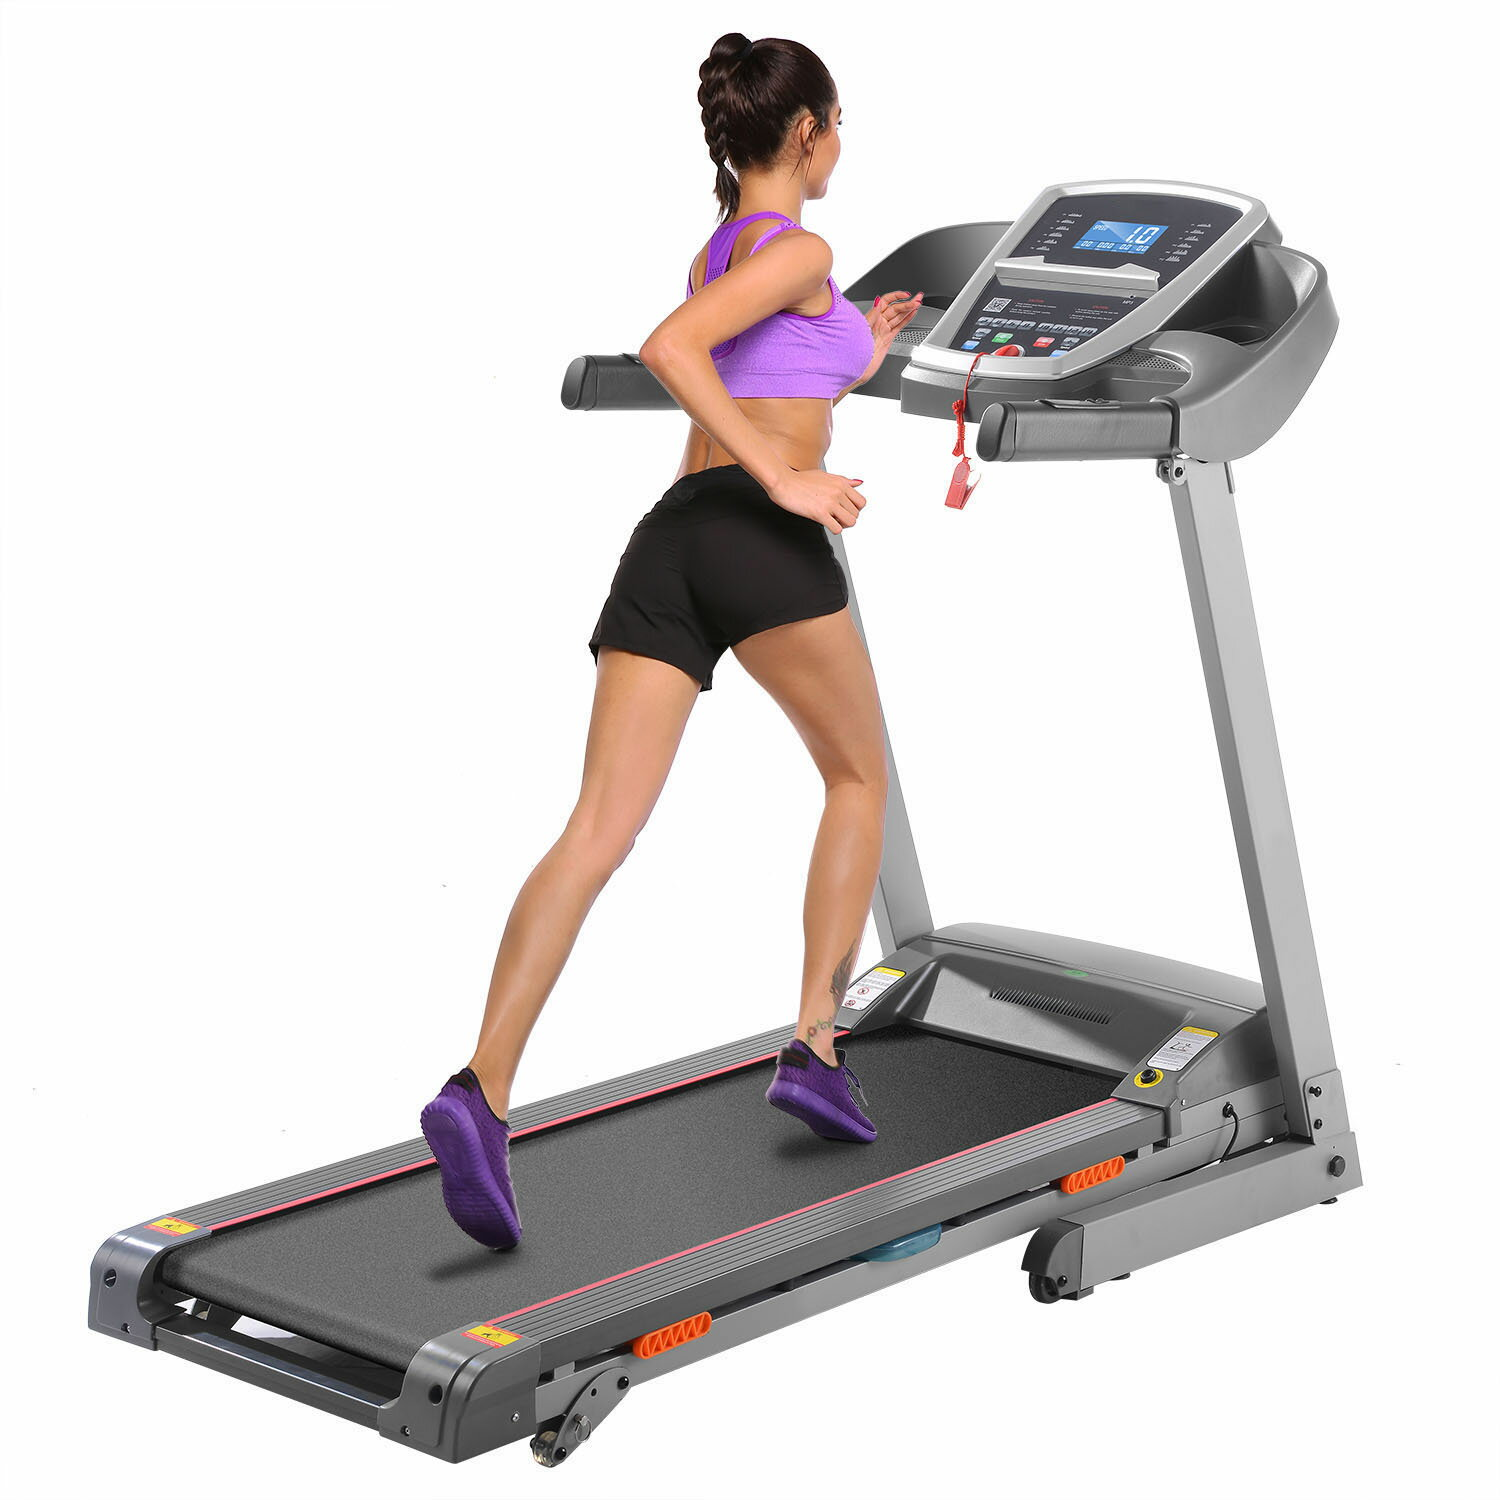 Electric Treadmill Exercise Equipment Machine Running Training Fitness Gym Home 0